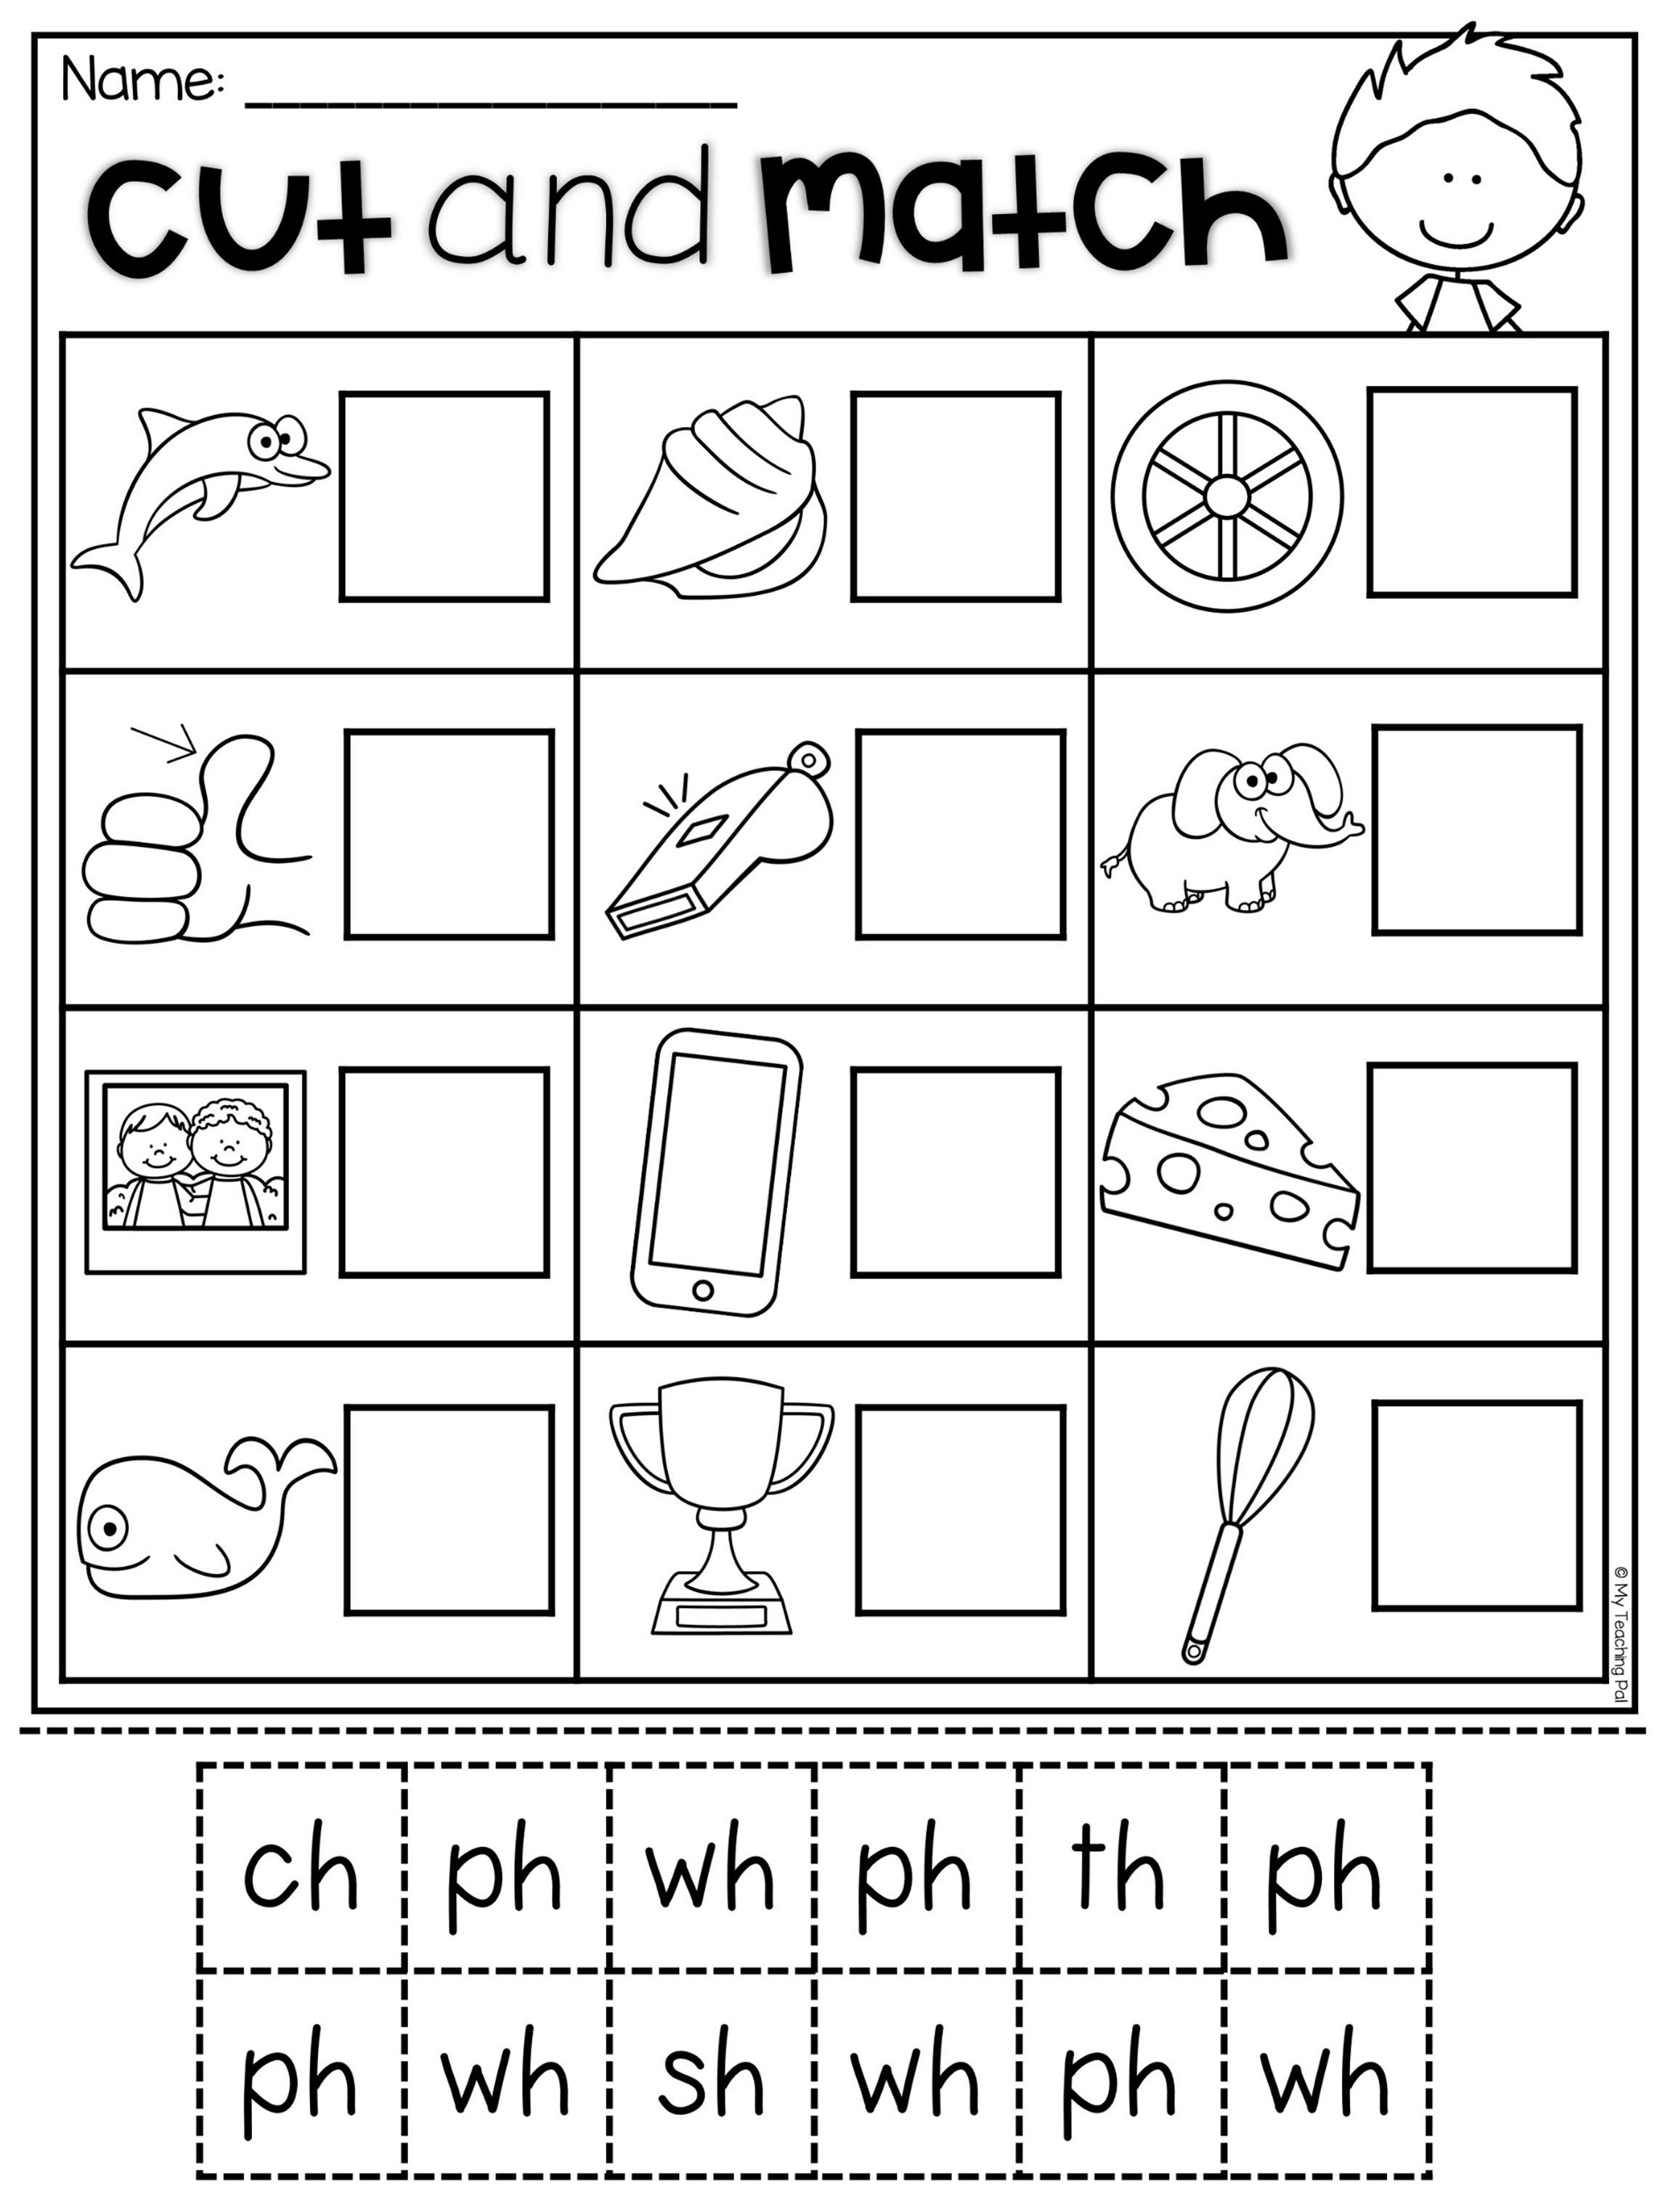 Digraph Worksheet Packet Ch Sh Th Wh Ph English T